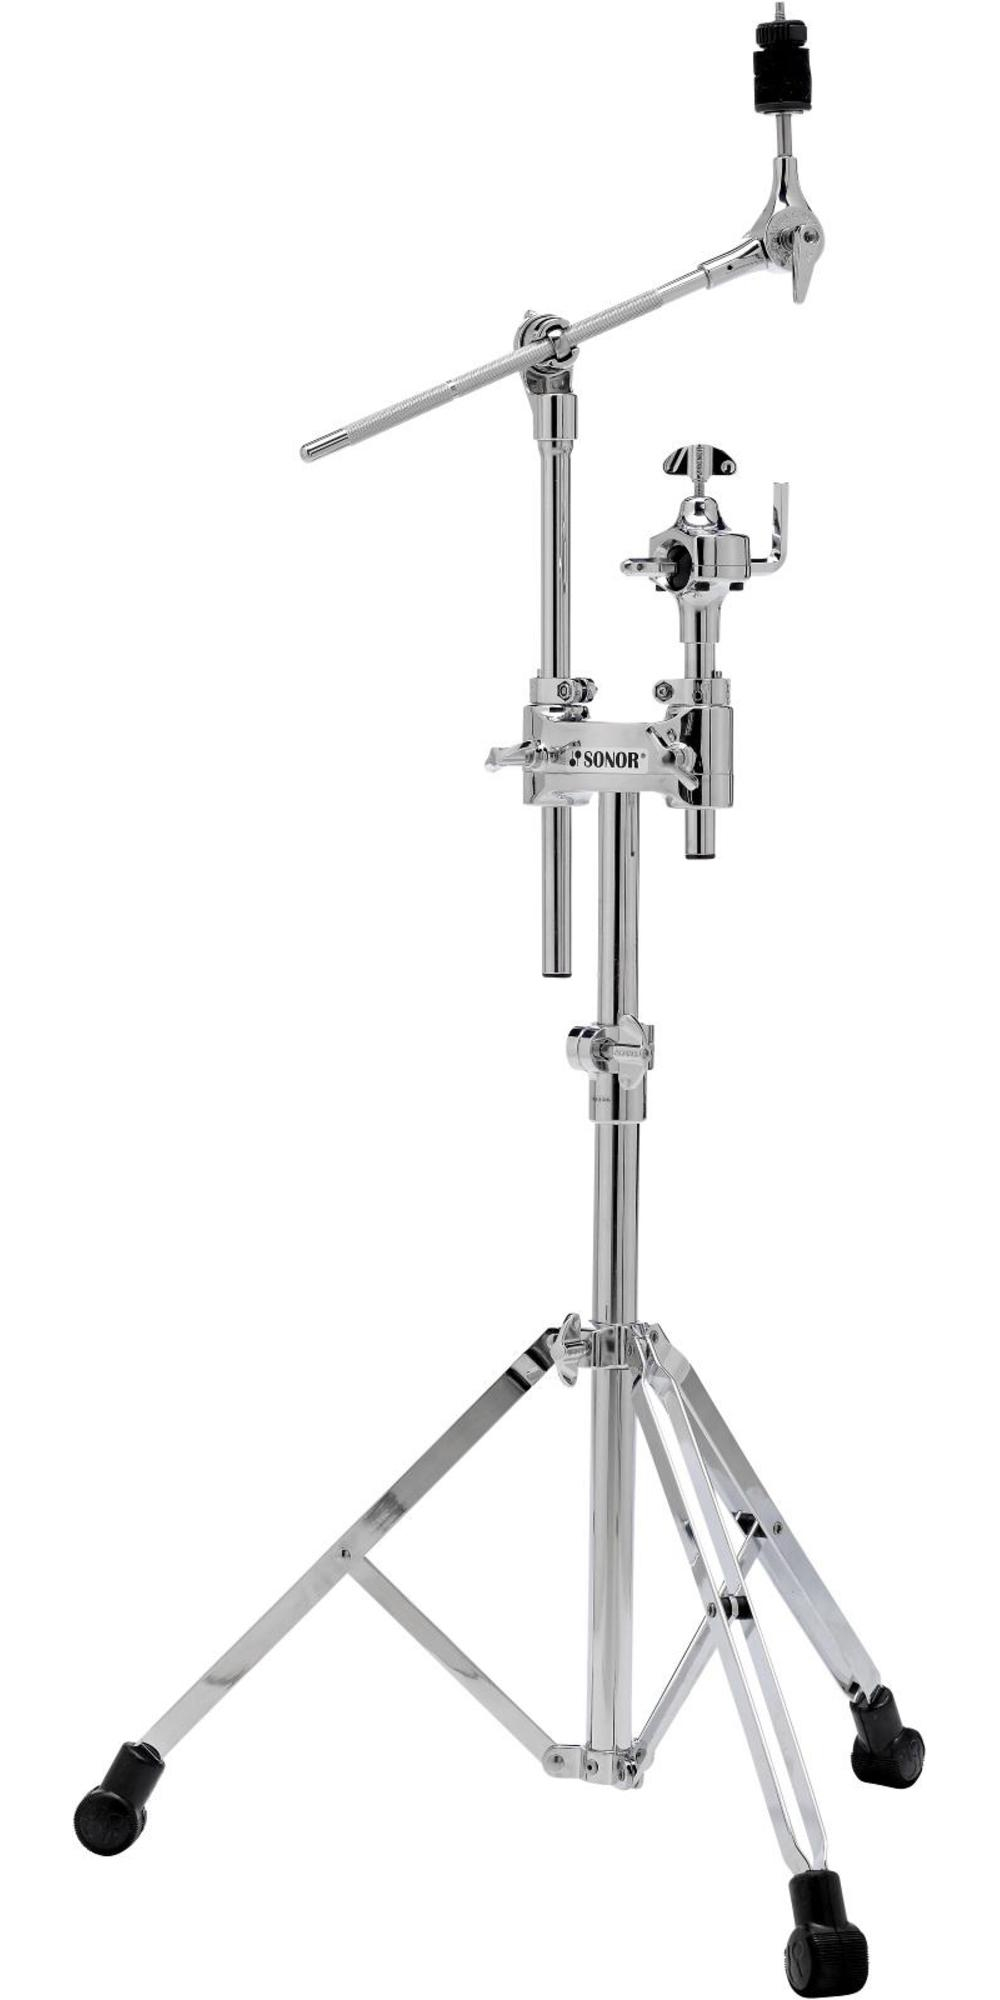 Sonor CTS-4000 SERIES CYMBAL TOM STAND by Sonor